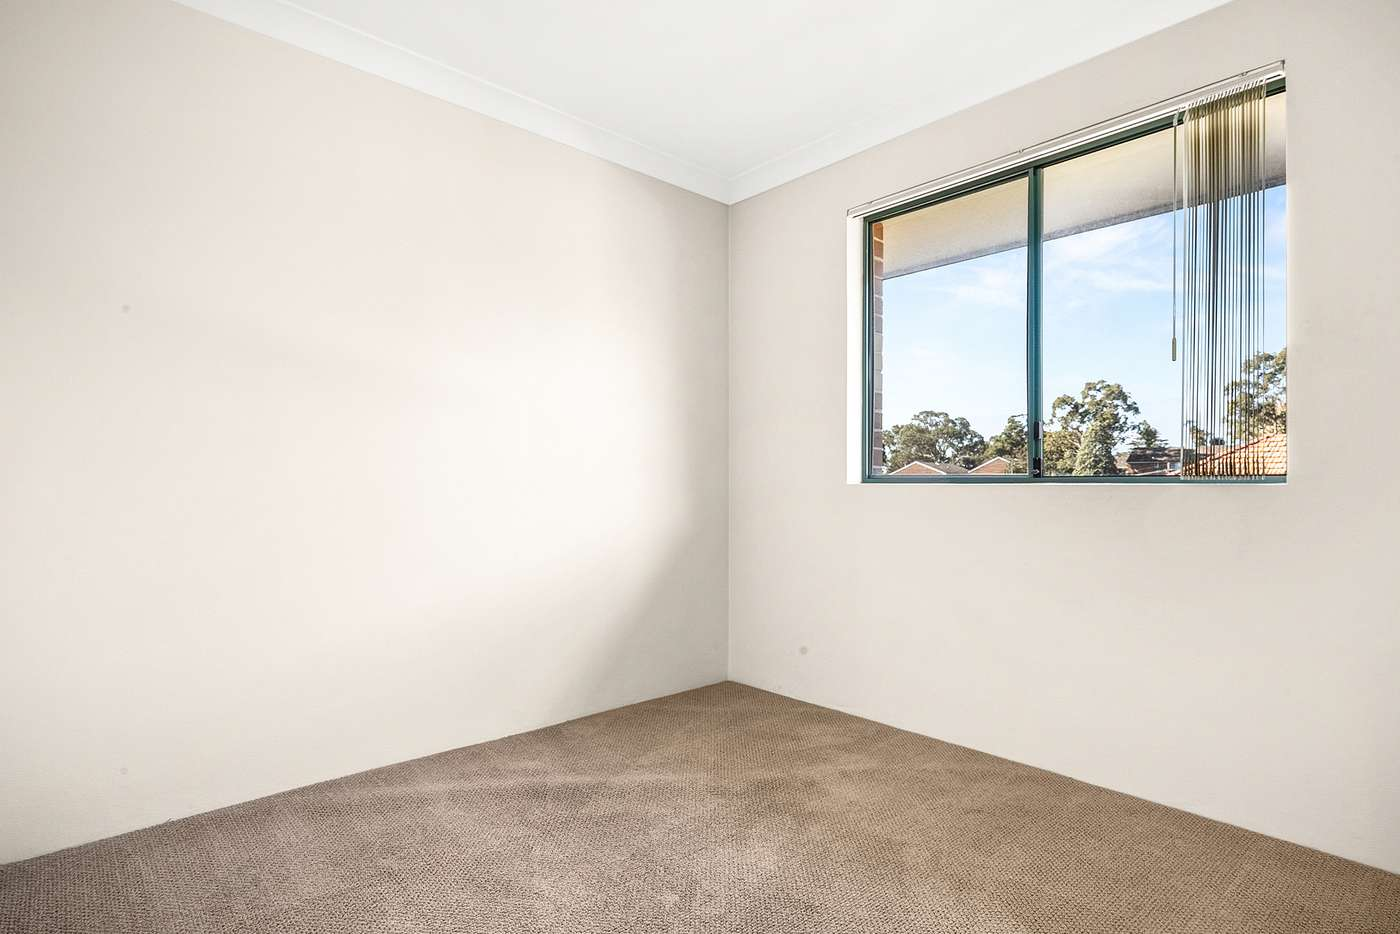 Sixth view of Homely townhouse listing, 2/138 Edenholme Road, Wareemba NSW 2046